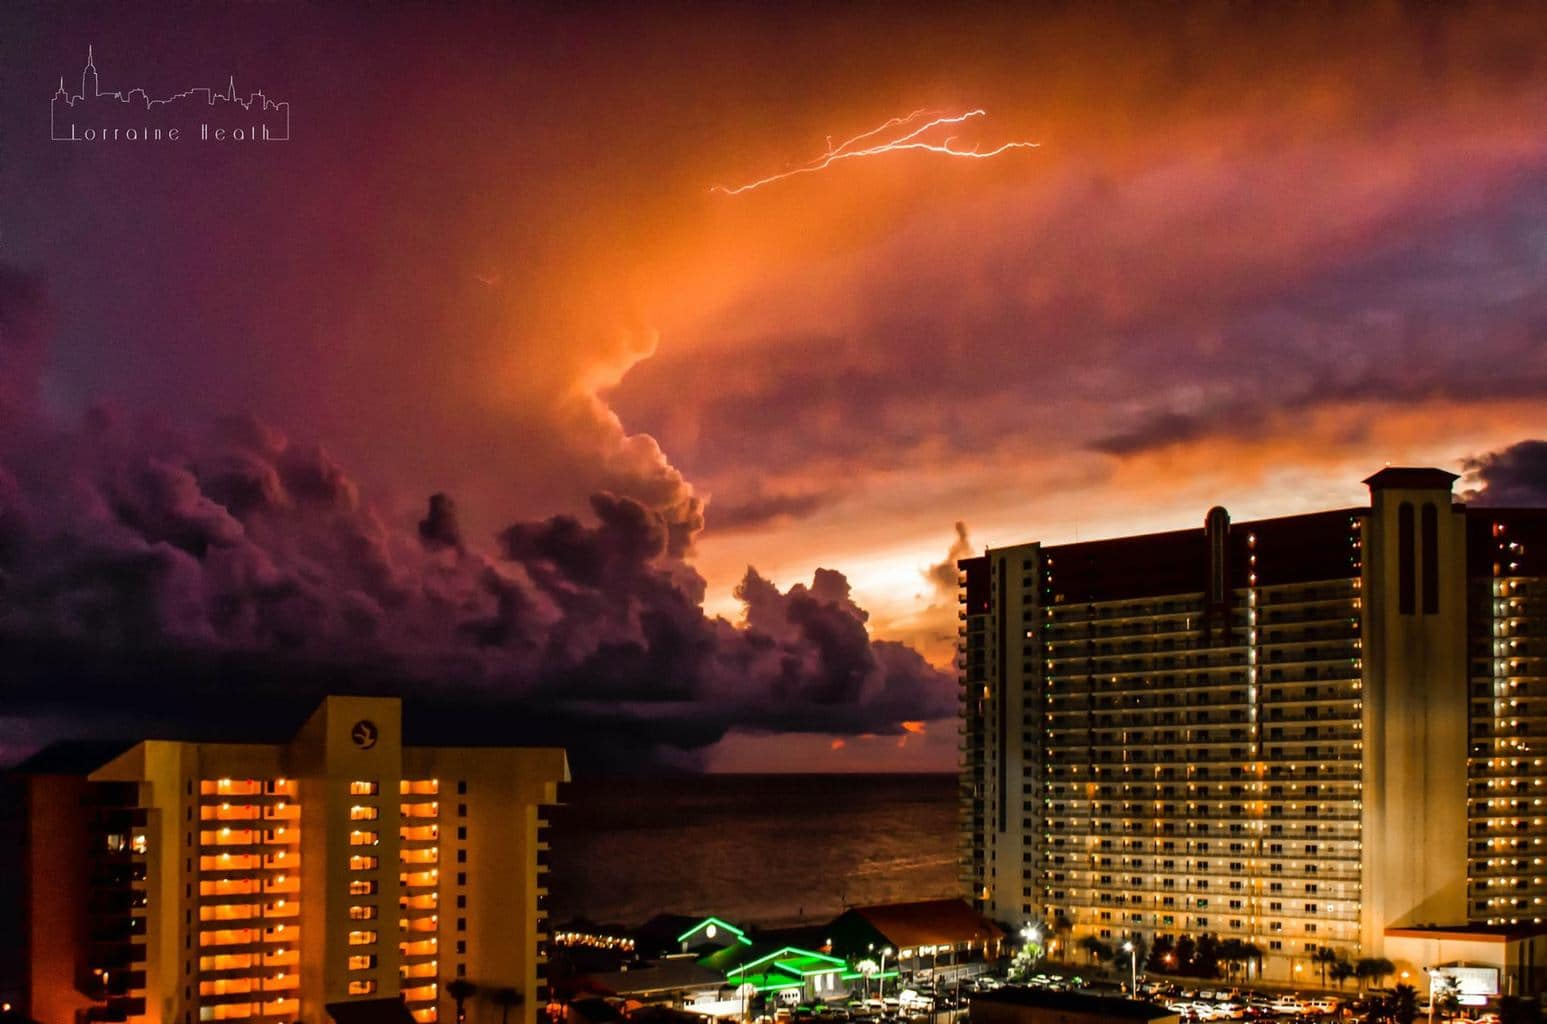 Lightning and a sunset